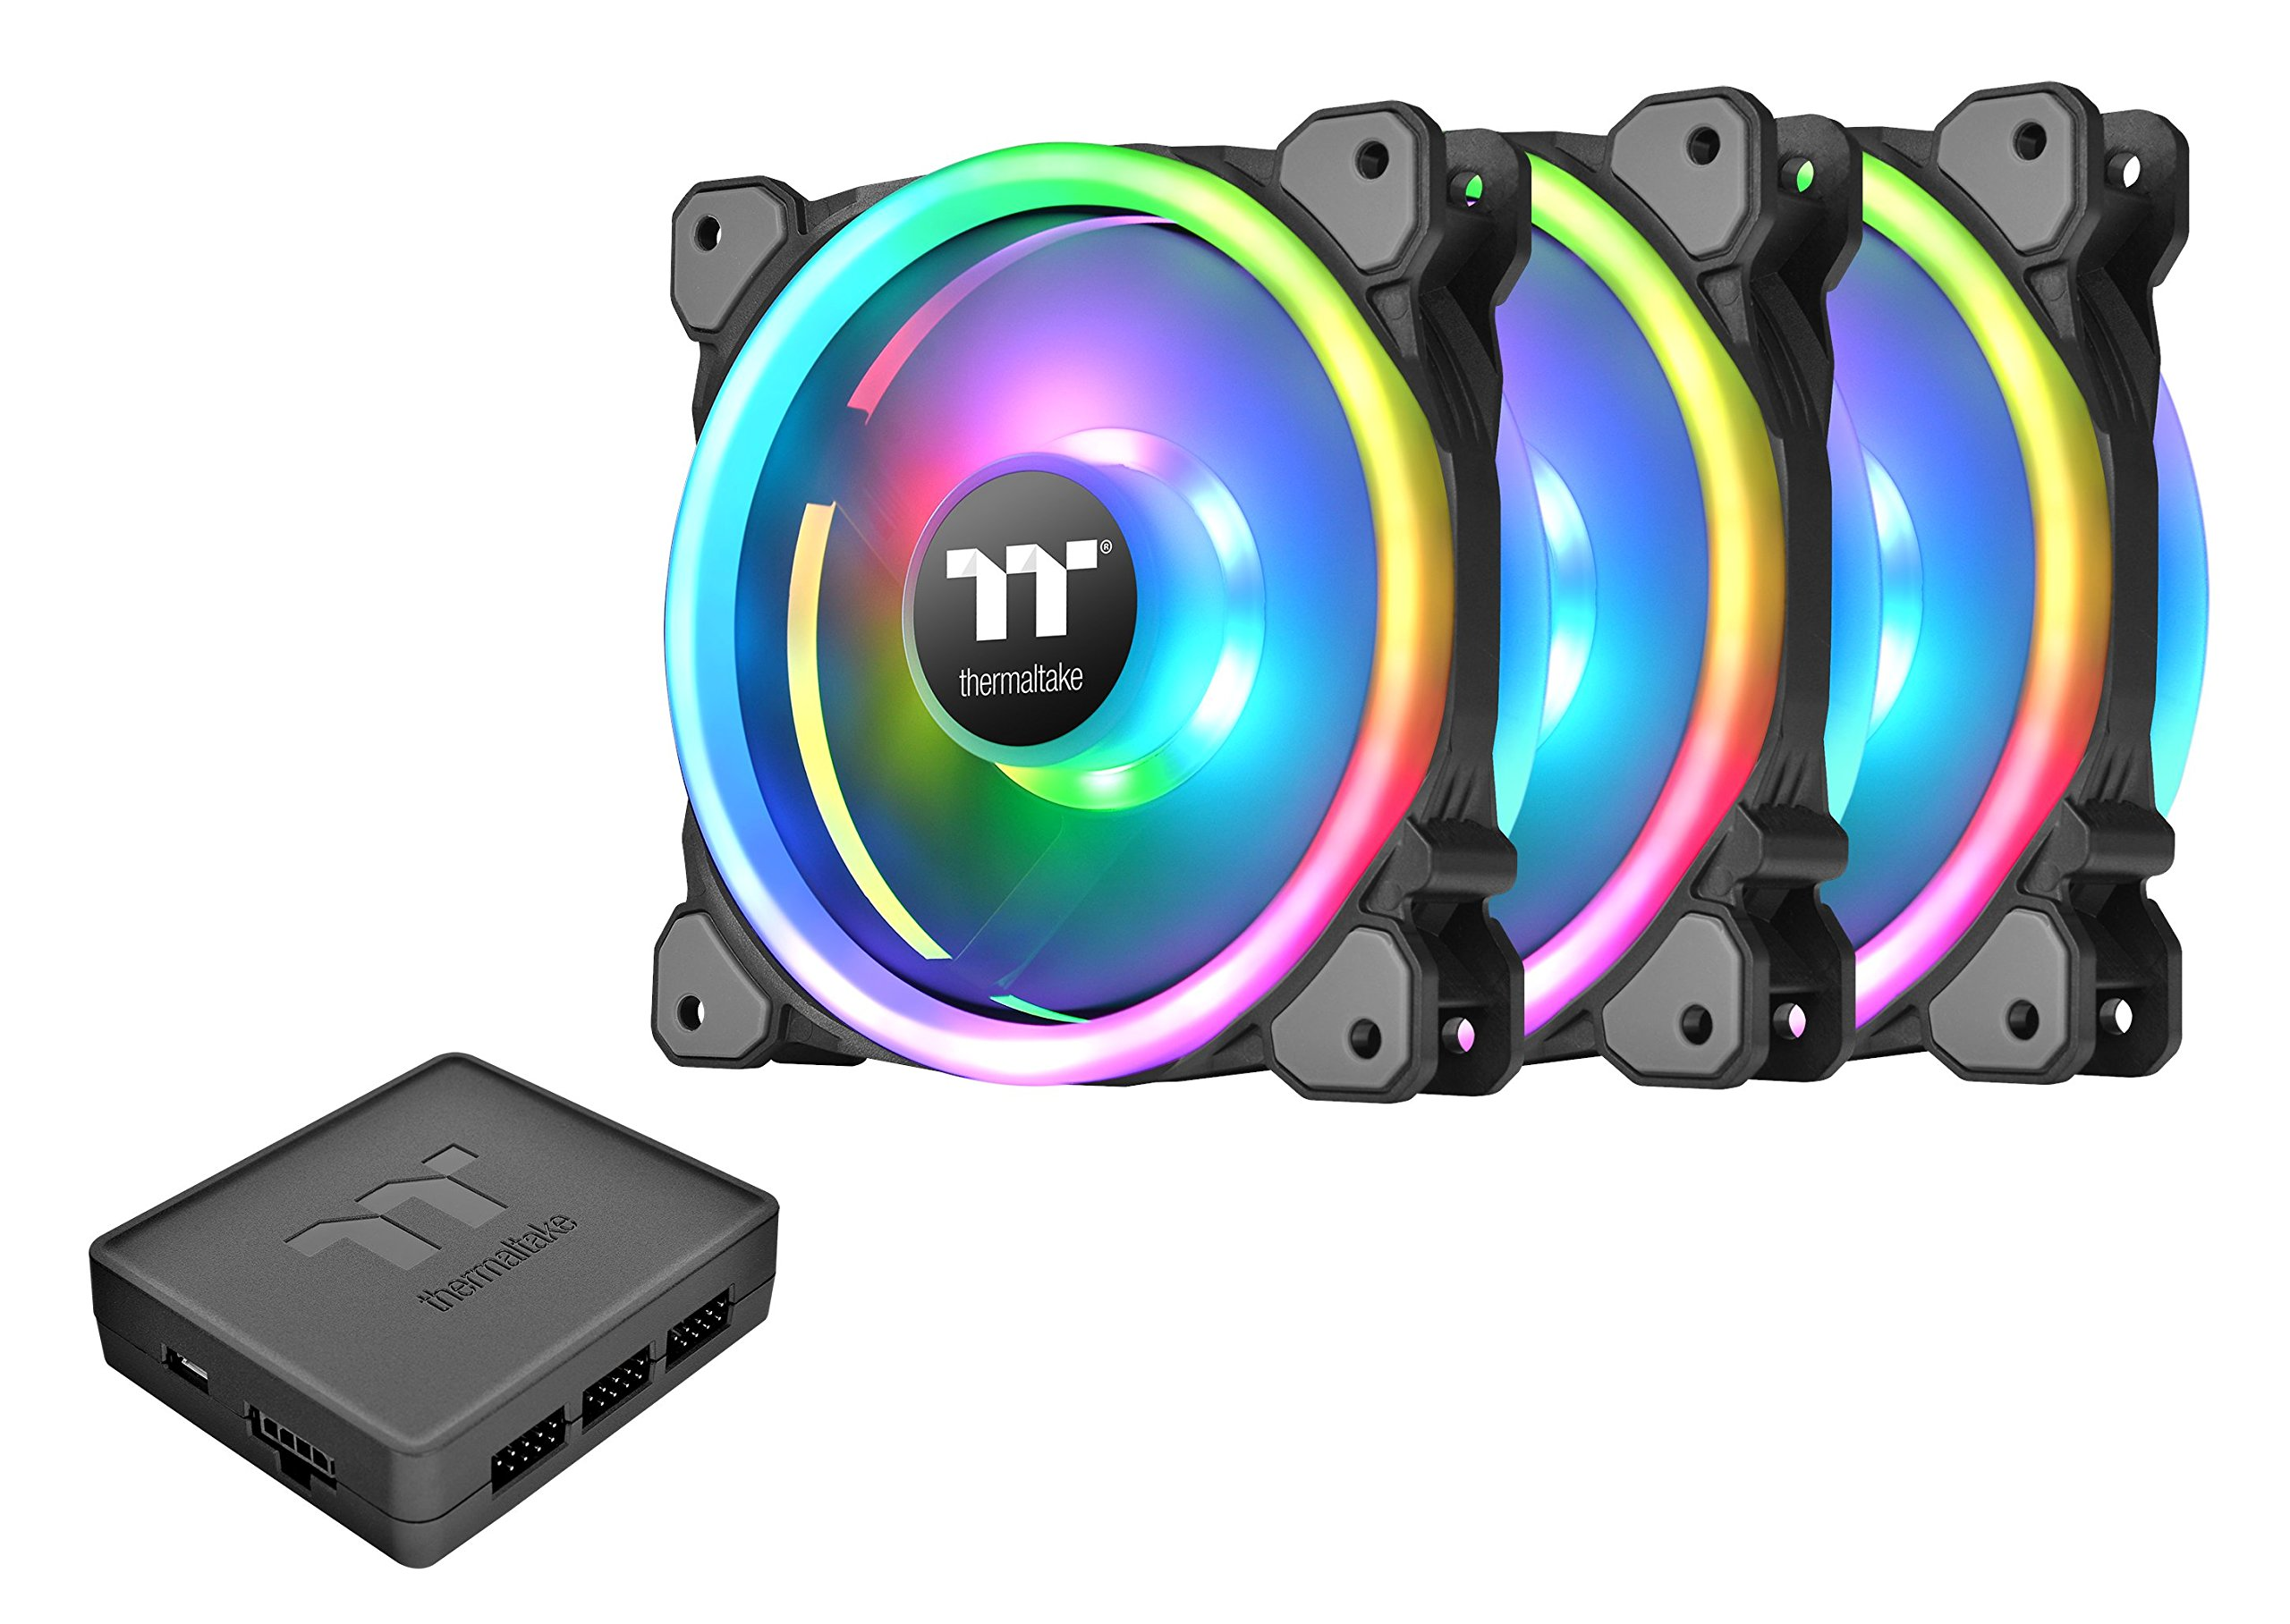 Thermaltake Riing Trio 12 RGB TT Premium Edition 120mm Software Enabled 30 Addressable LED 9 Blades Case/Radiator Fan - 3 Pack - CL-F072-PL12SW-A by Thermaltake (Image #1)